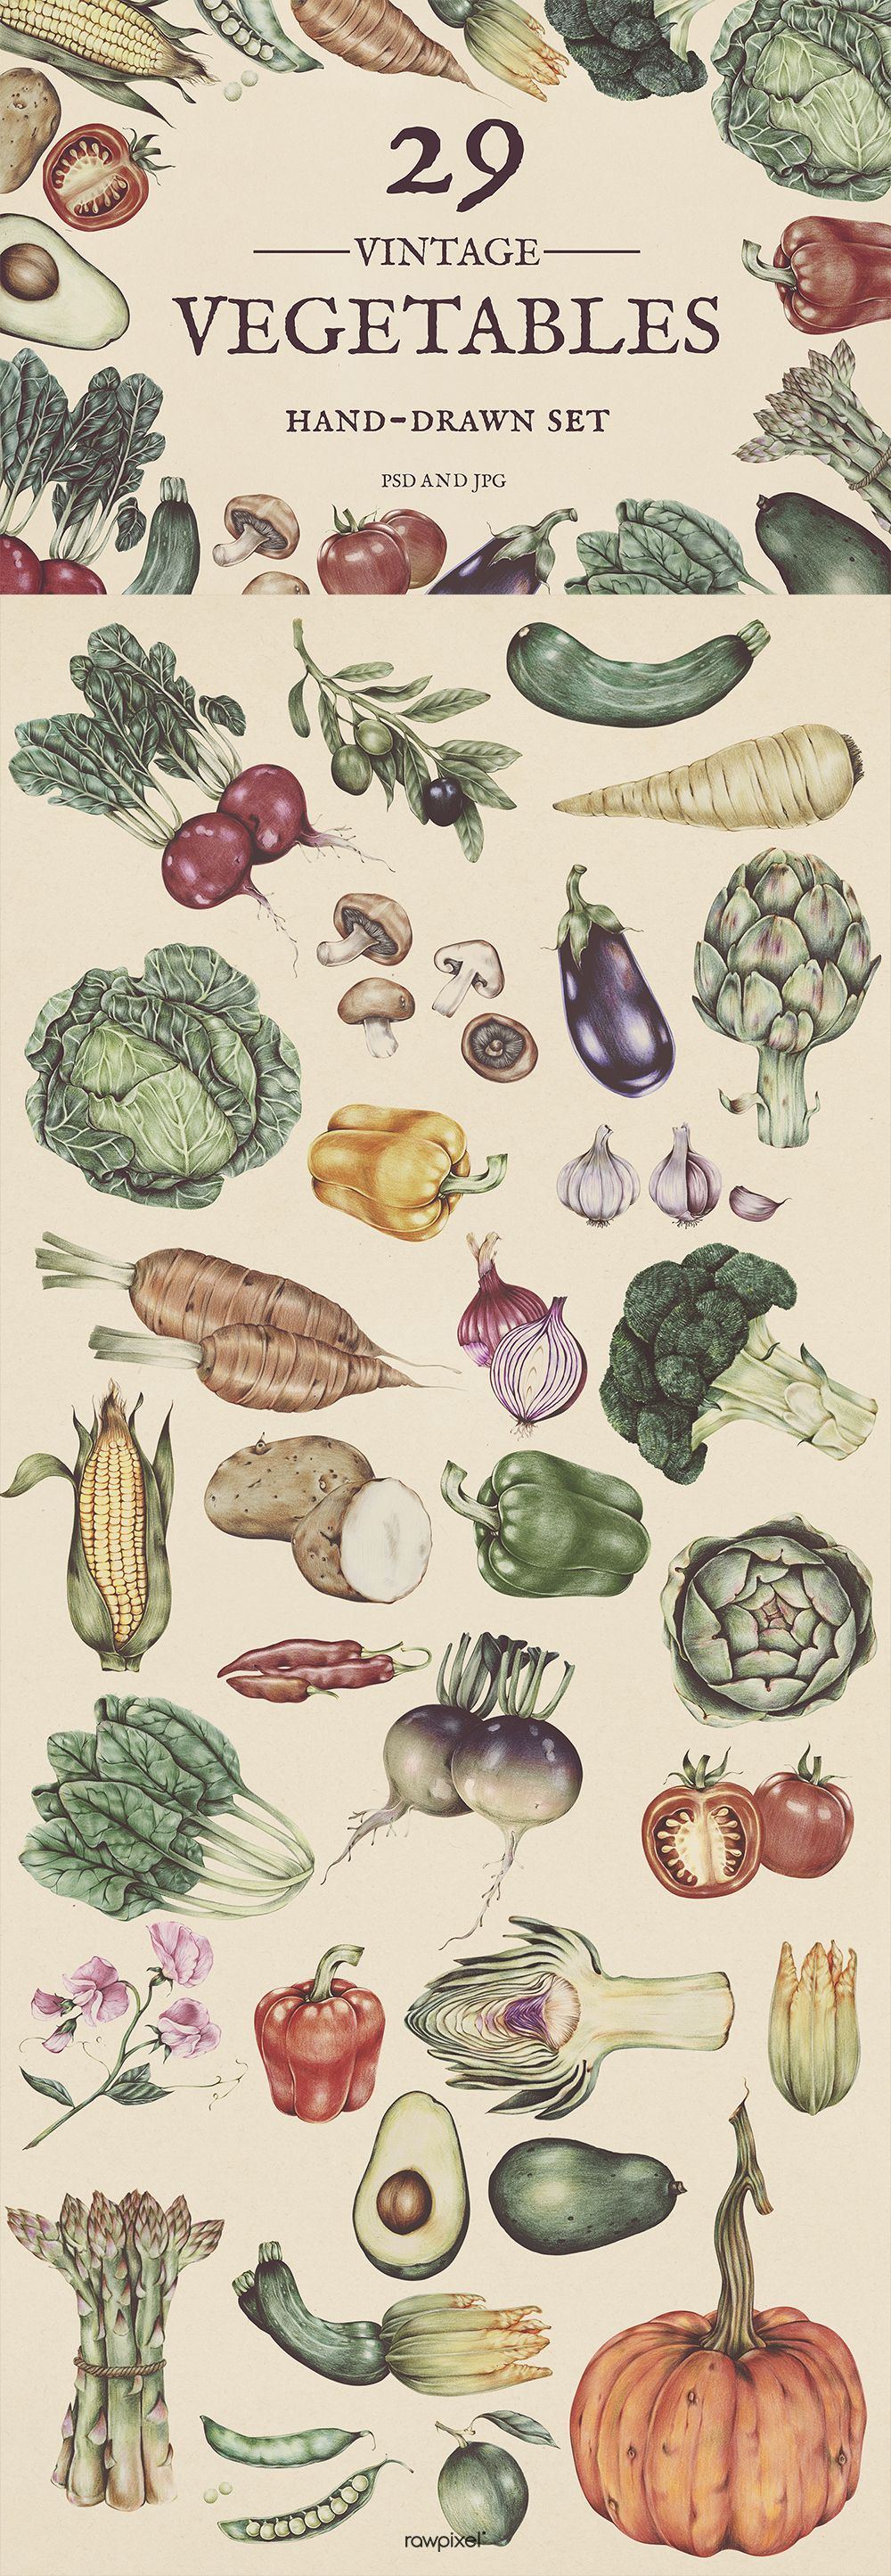 Download Free And Premium Royalty Free Images Of Vegetables Vectors At Rawpixel Com Free Images Royalty Free Images Web Design Resources